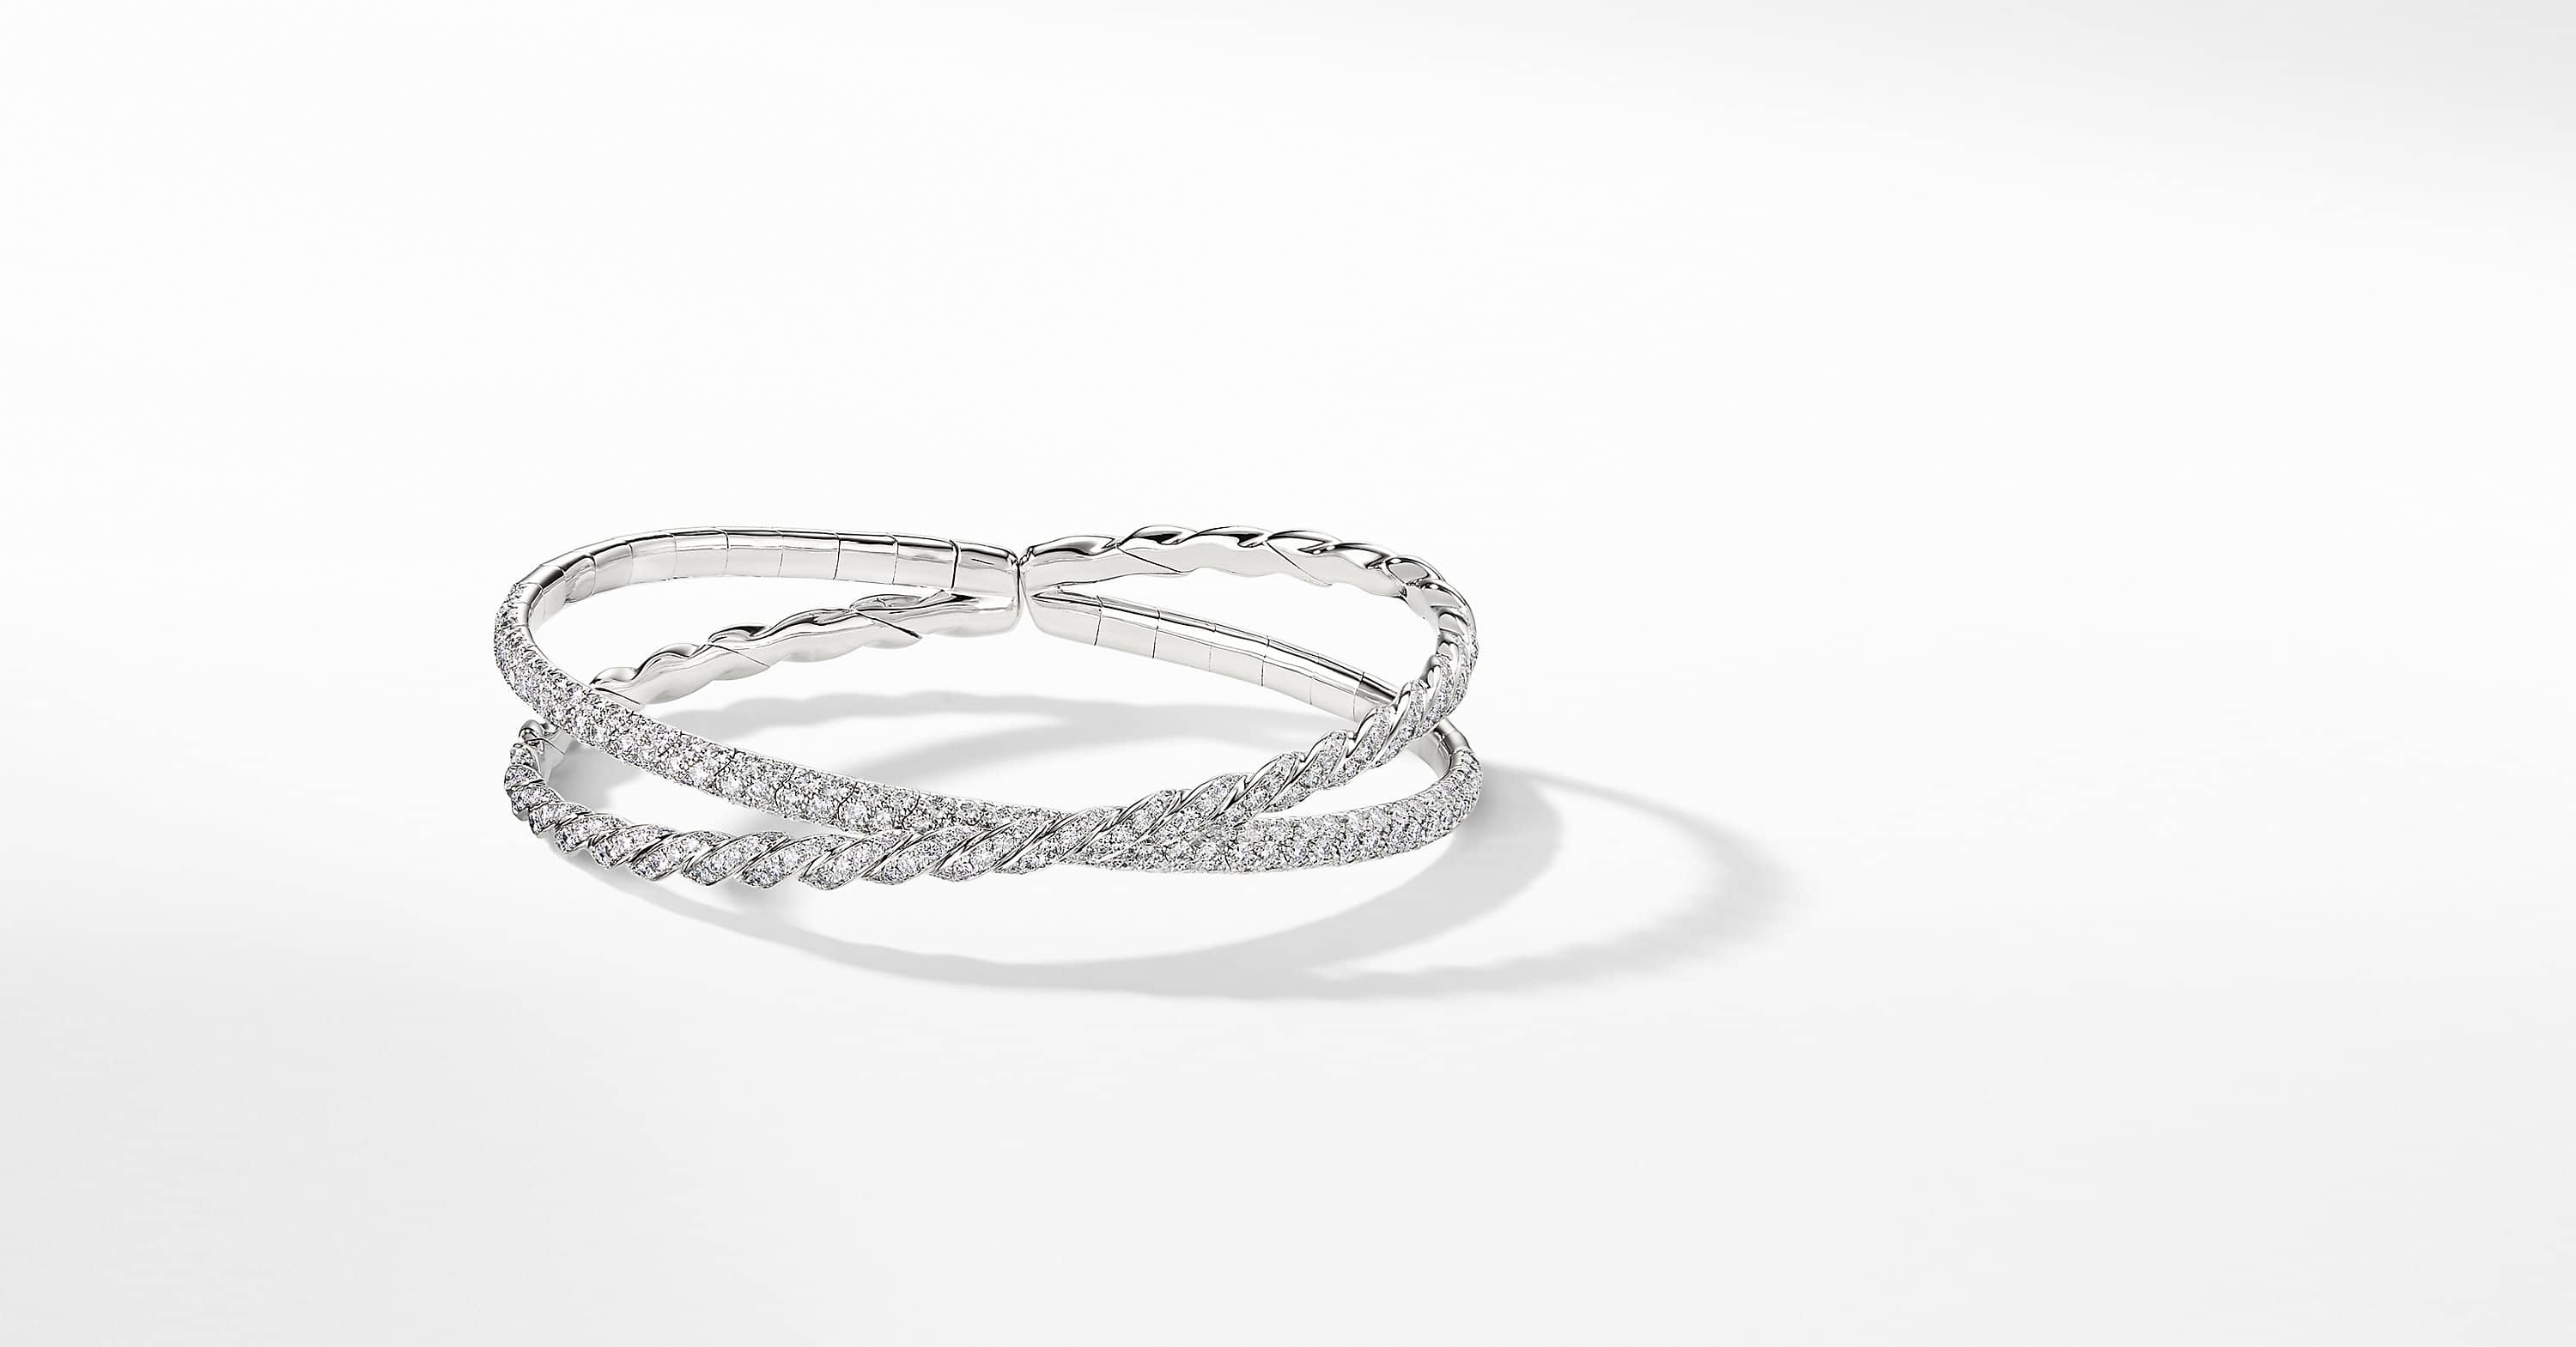 Pavéflex Two Row Bracelet with Diamonds in 18K White Gold